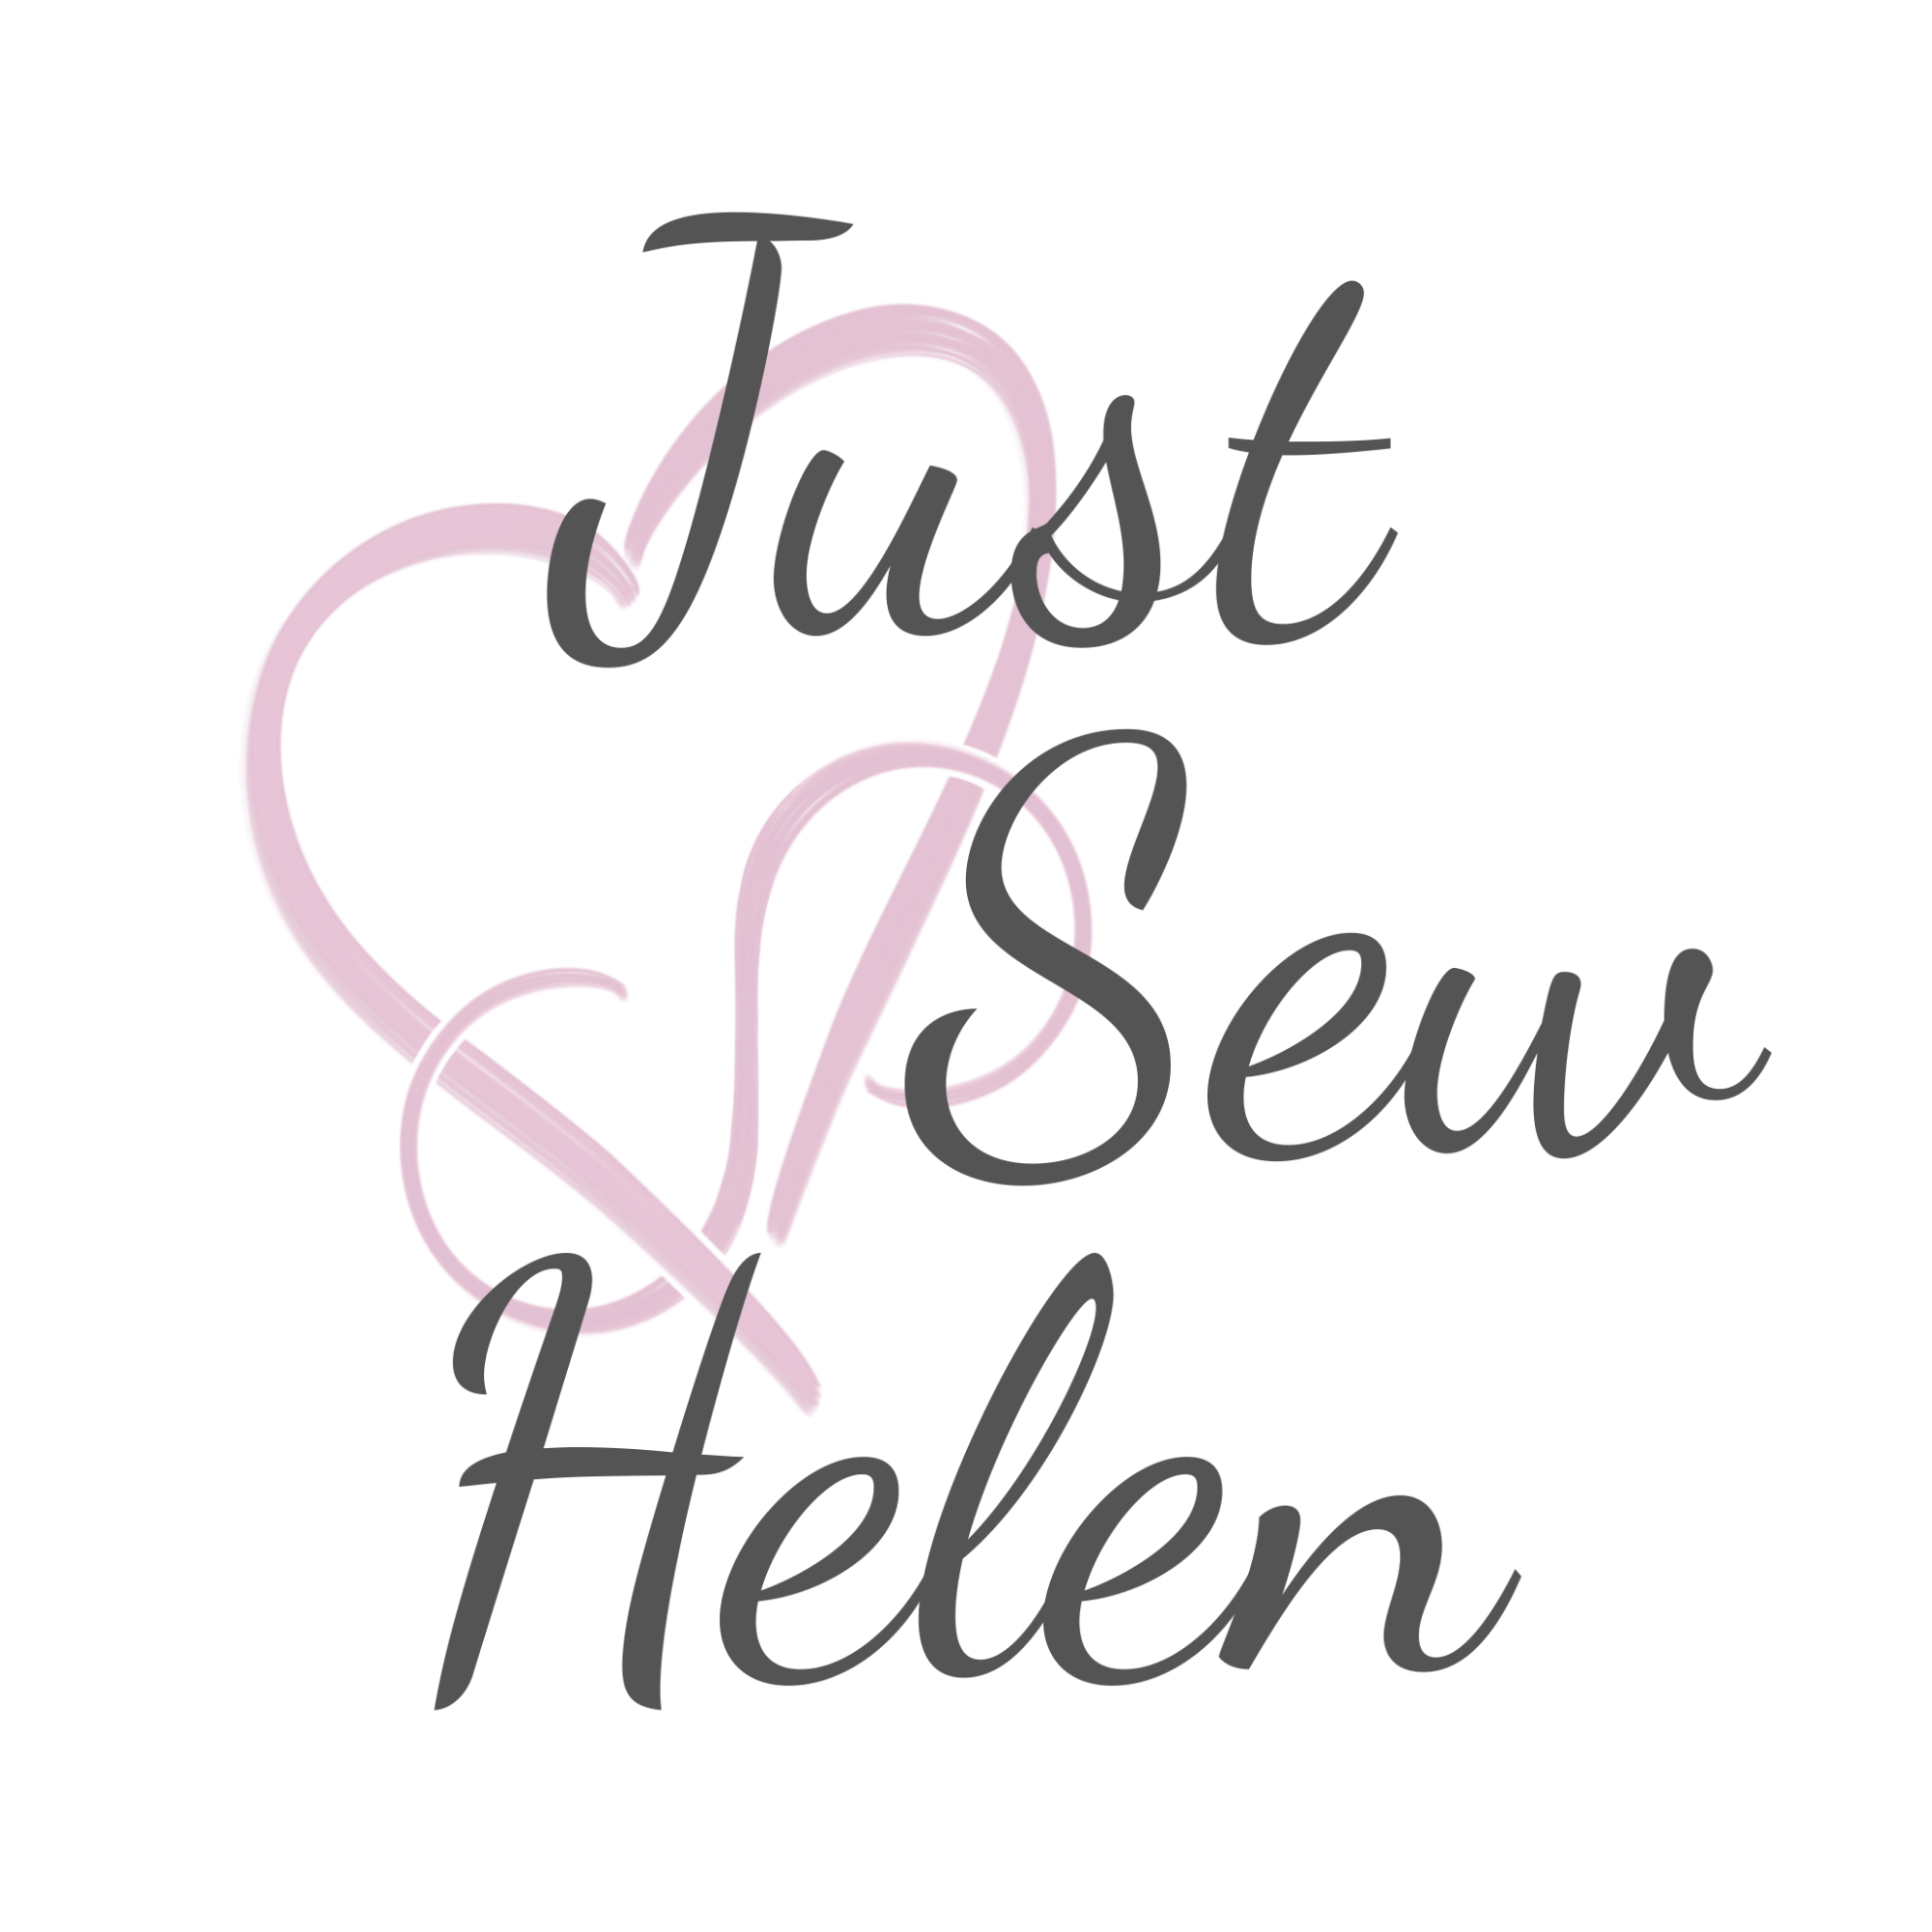 Bereavement gifts	DMC Thread	DMC	Embroidery	Hand embroidery	Handcrafted business	Just Sew Helen	Just Sew Helen Bereavement gifts & keepsakes	JustSewHelen.com	Memory gifts & keepsakes	Miscarriage	Remembrance gifts	Textile Art	Stillbirth	Stillborn